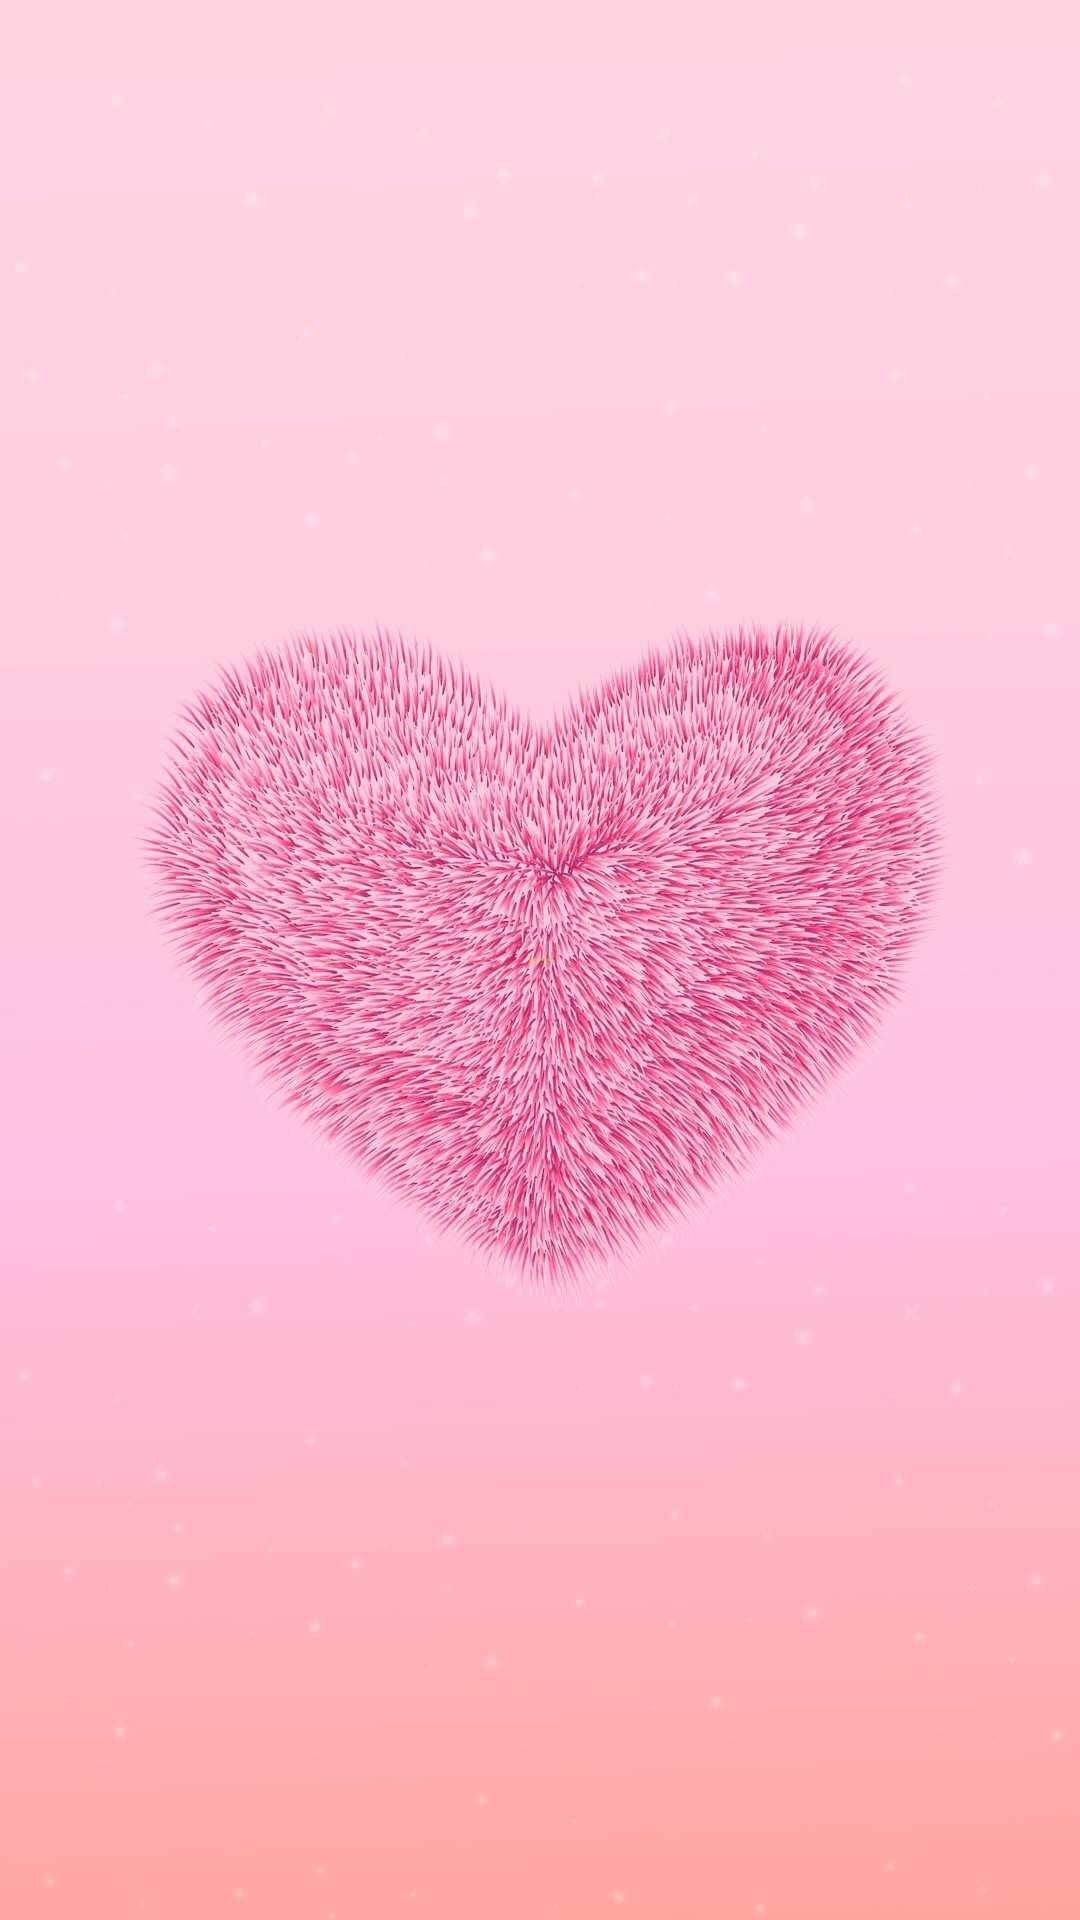 Heart, Pink, Love, Heart, Illustration, Valentines Day, Iphone Wallpaper